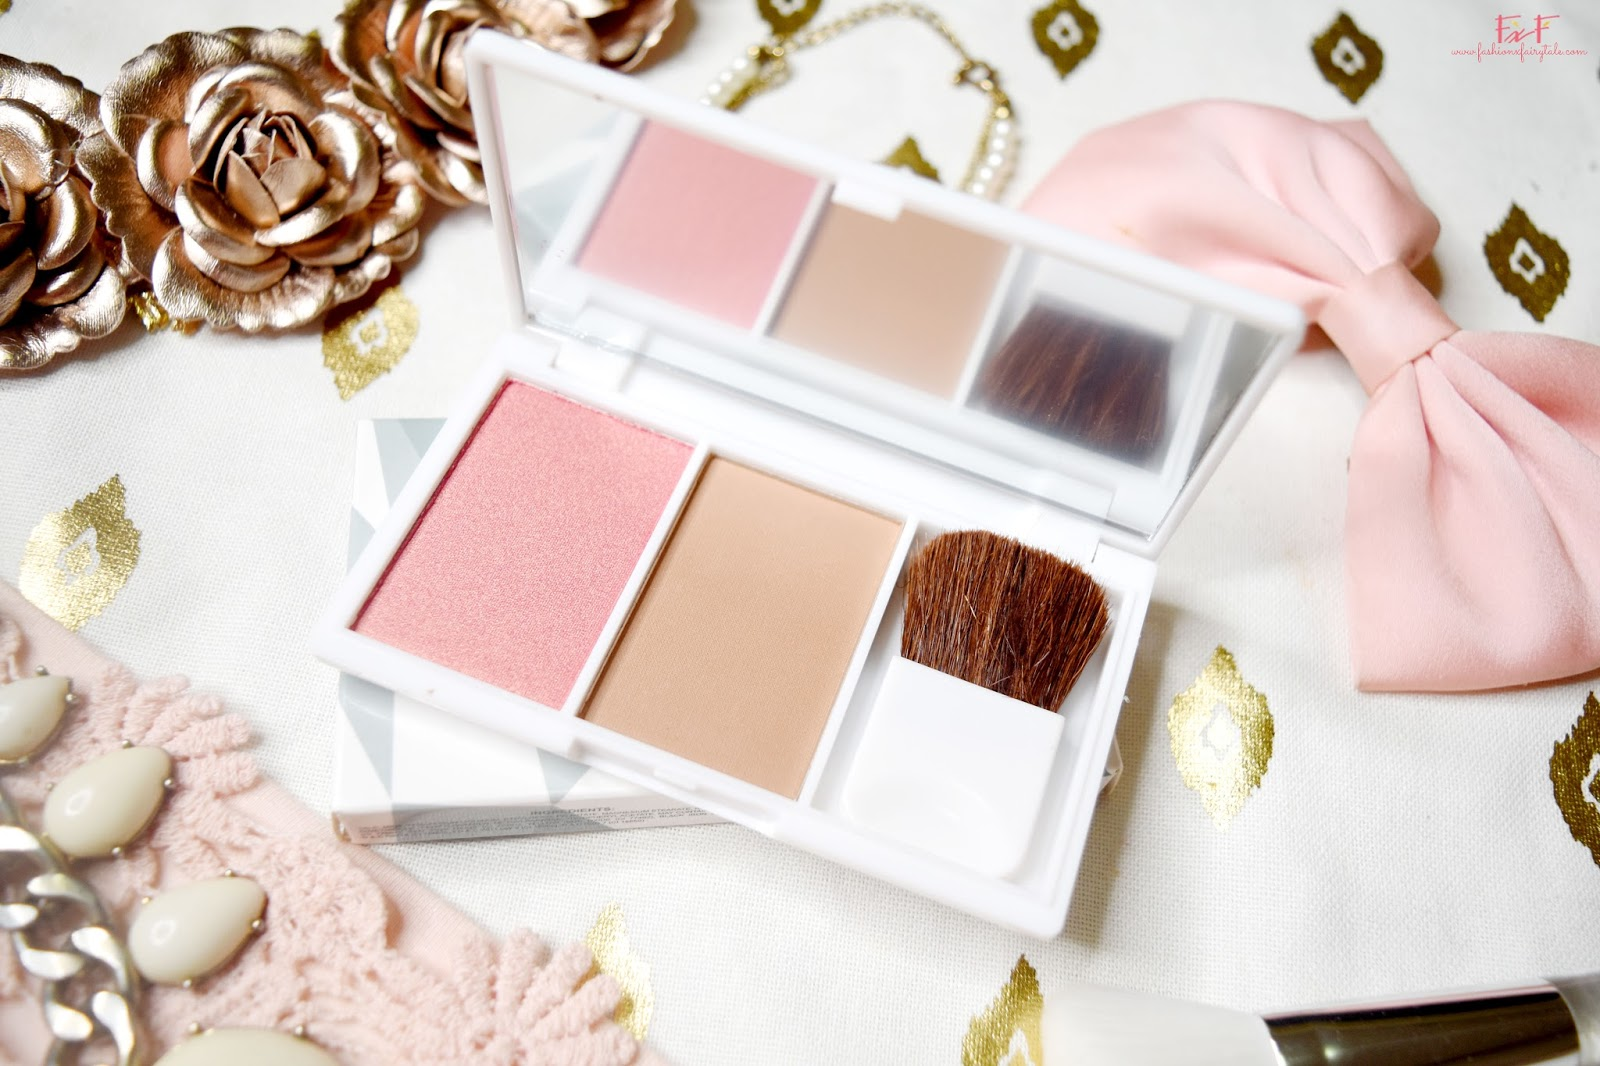 EB Advance Blush Duo in Golden Goddess | Review & Swatches